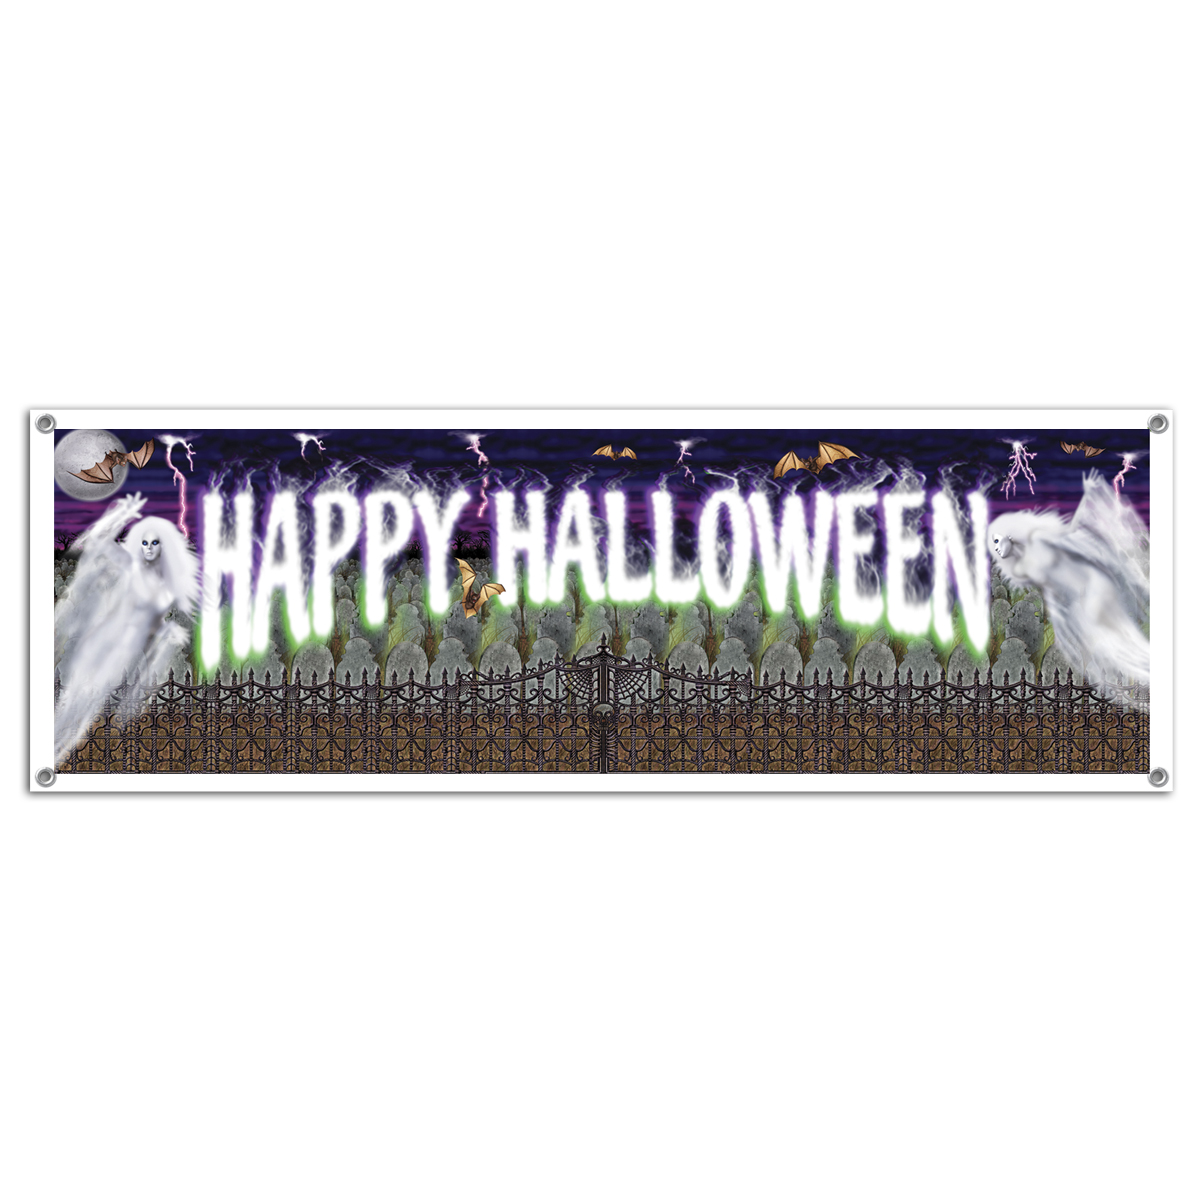 LARGE BANNER - HALLOWEEN MYSTERIOUS GHOSTS